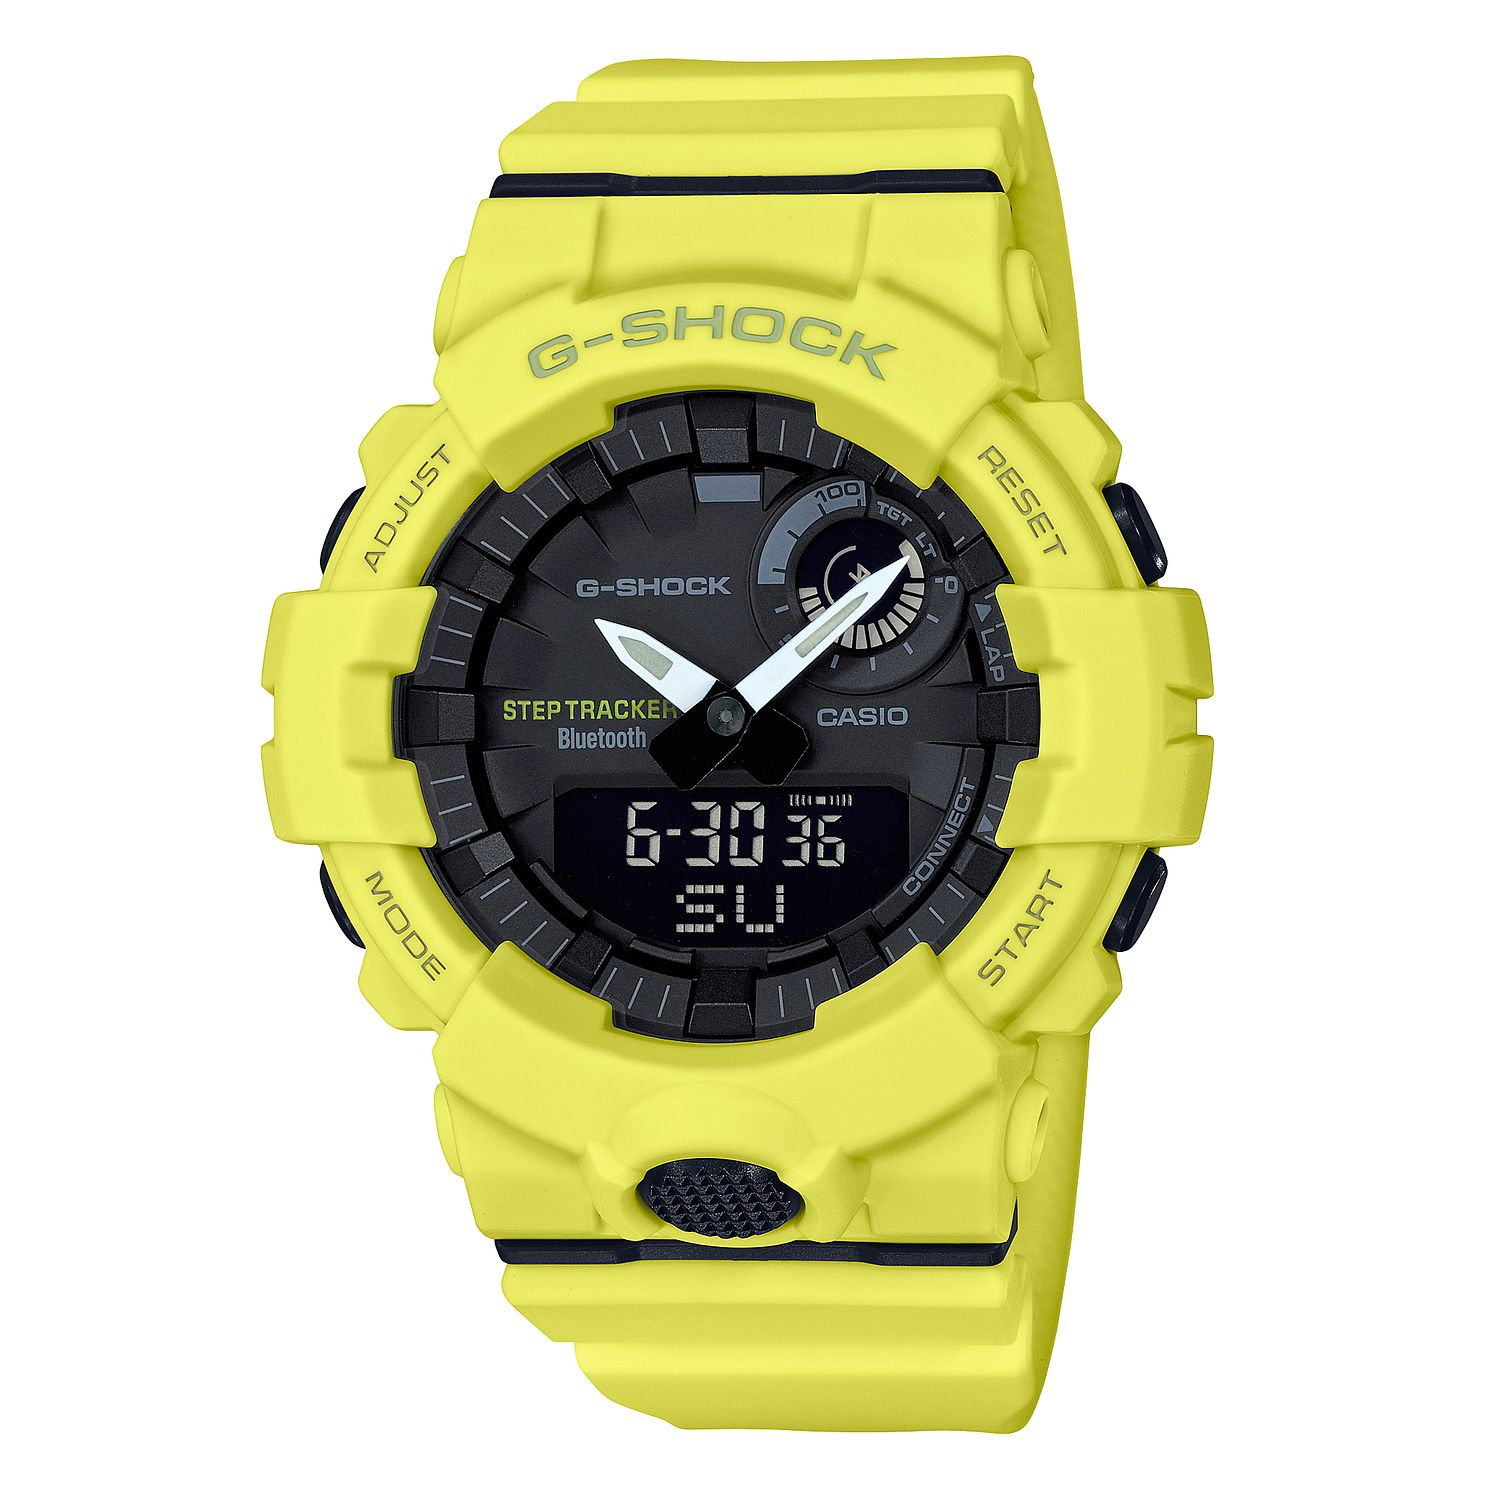 Casio G-Shock Men's Step Tracker Resin Yellow Strap Watch - Product number 9806105